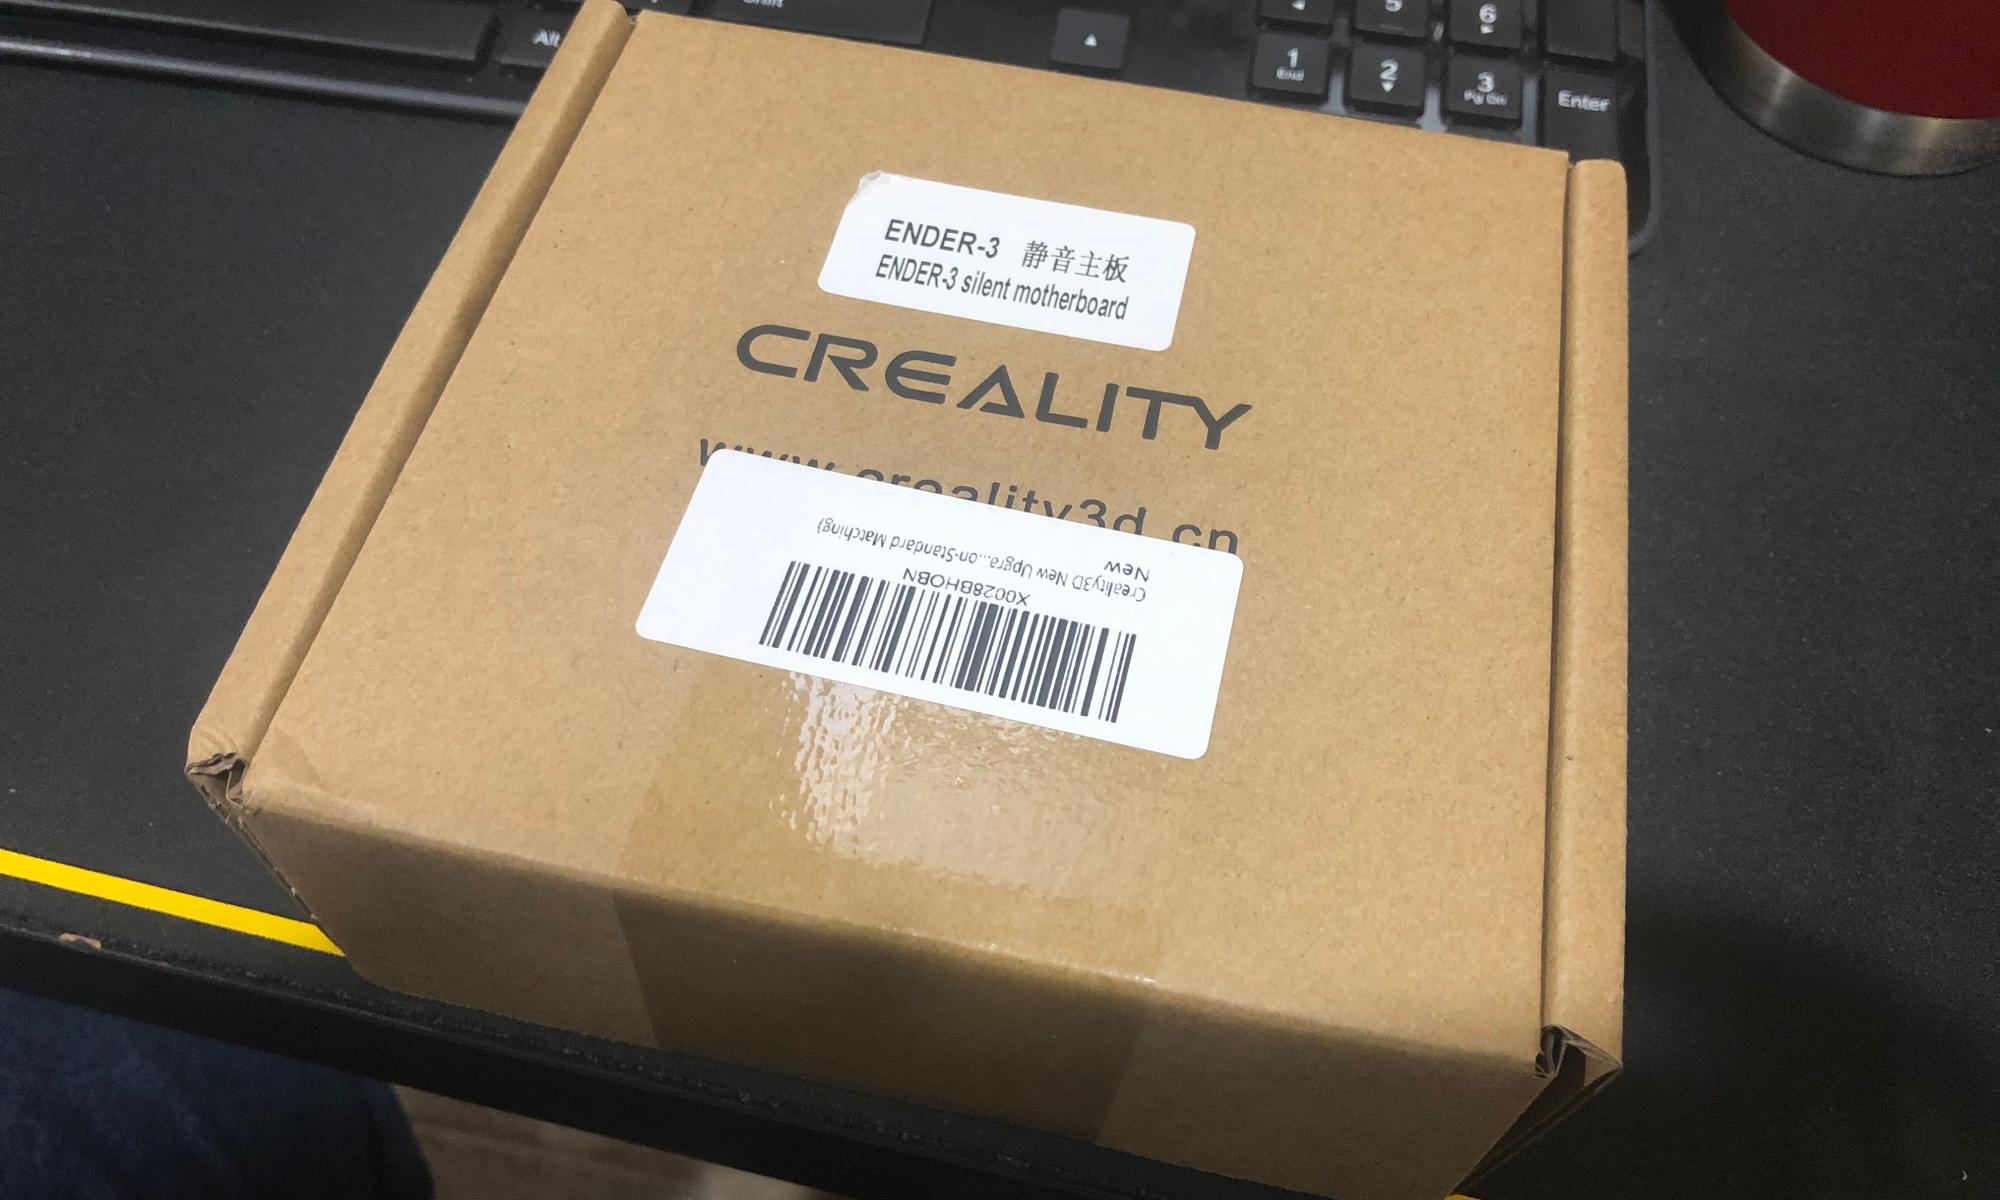 Box for Creality 3D 1.1.5 Upgraded Mainboard for Ender 3